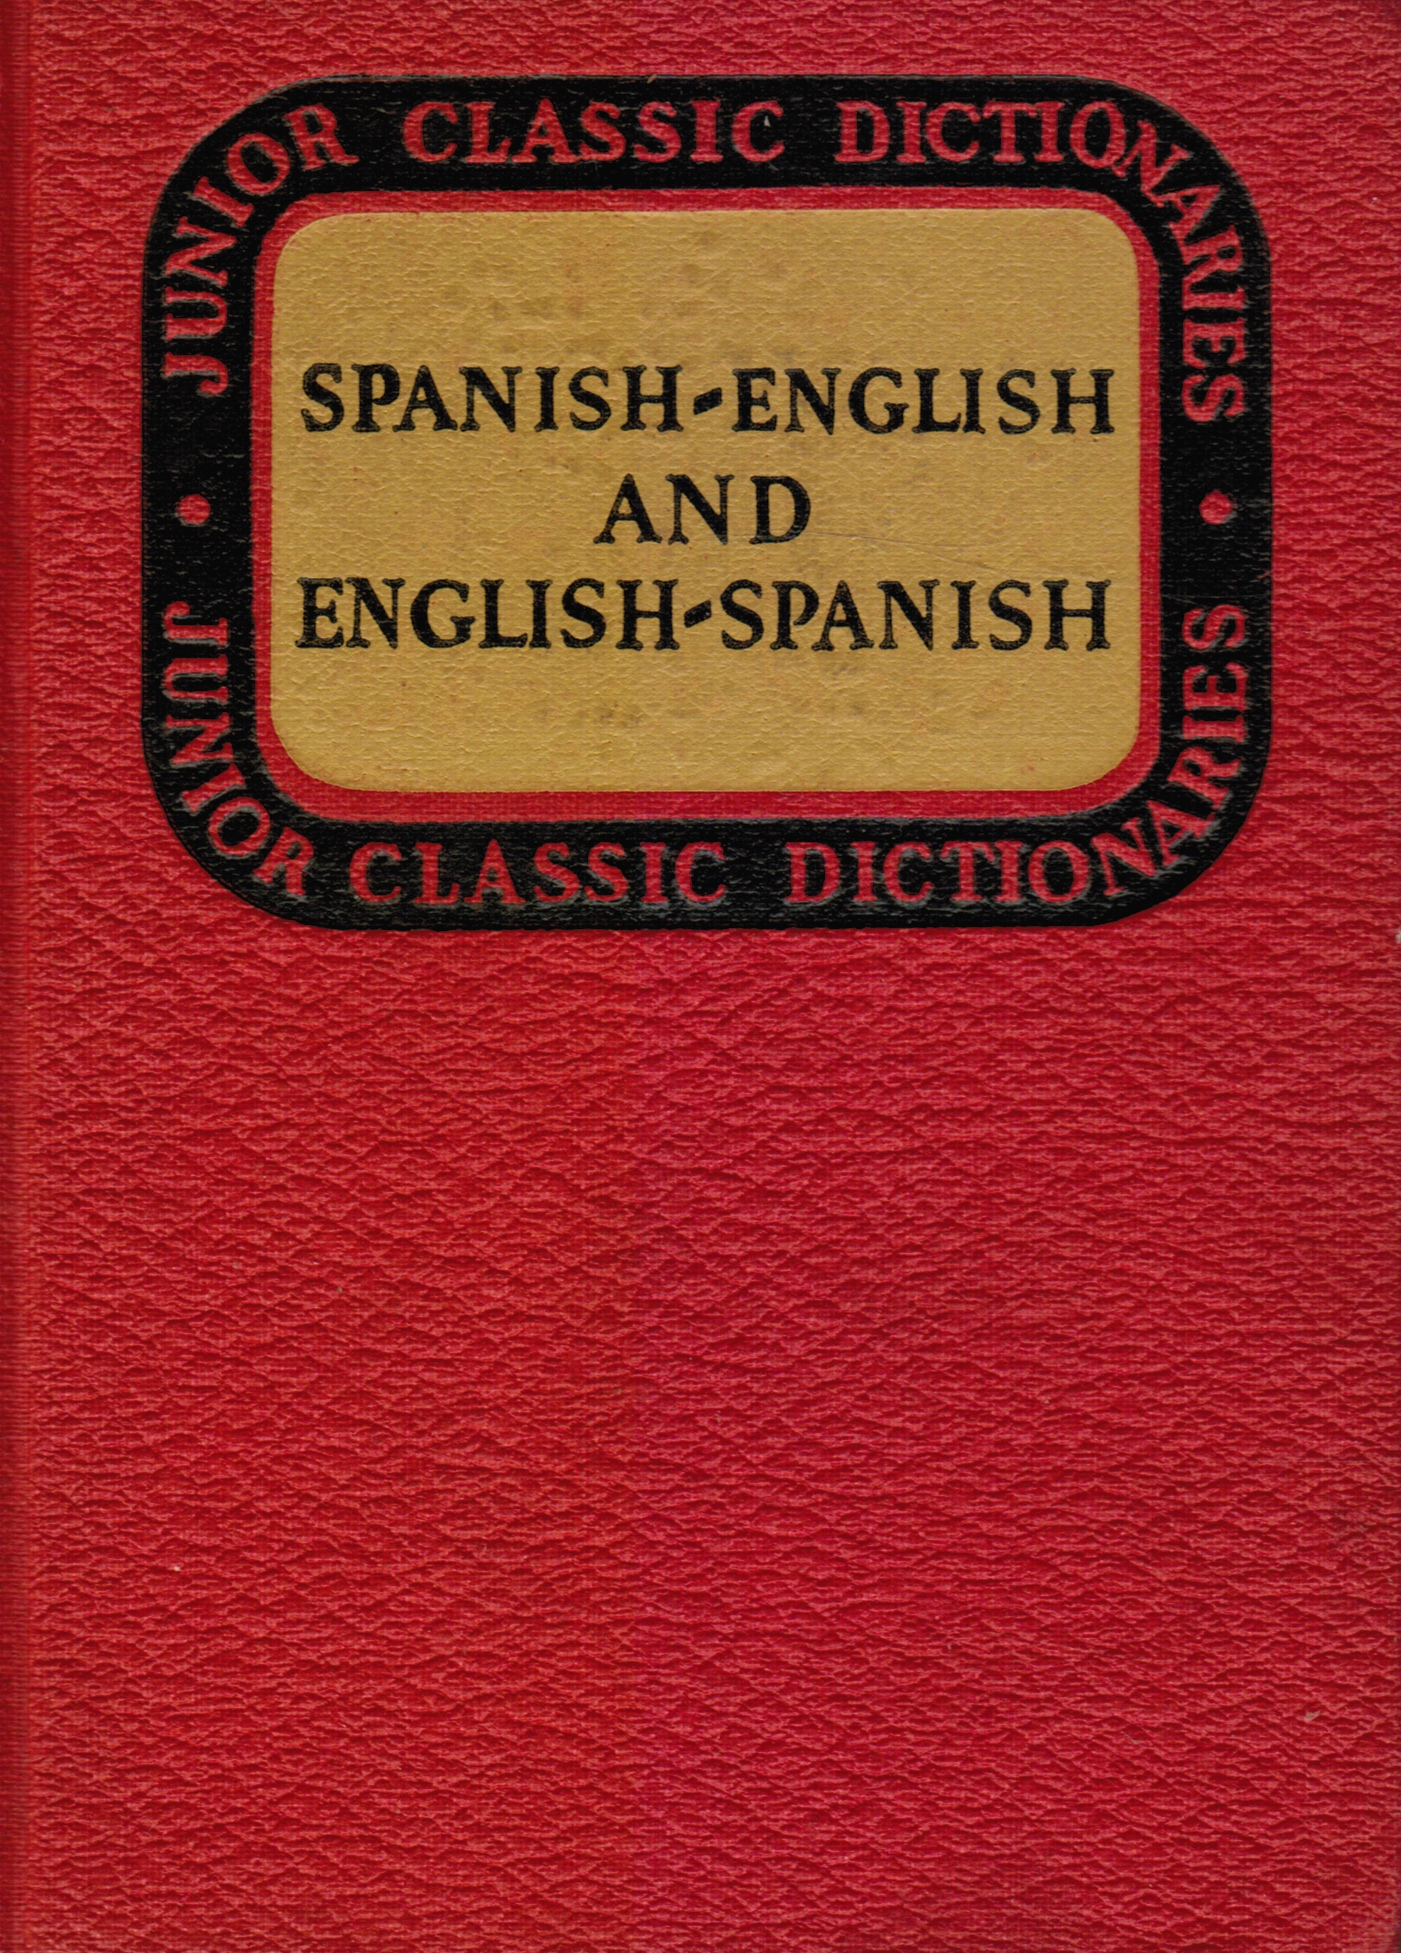 Image for Junior Classic Spanish Dictionary: Spanish-English And English-Spanish